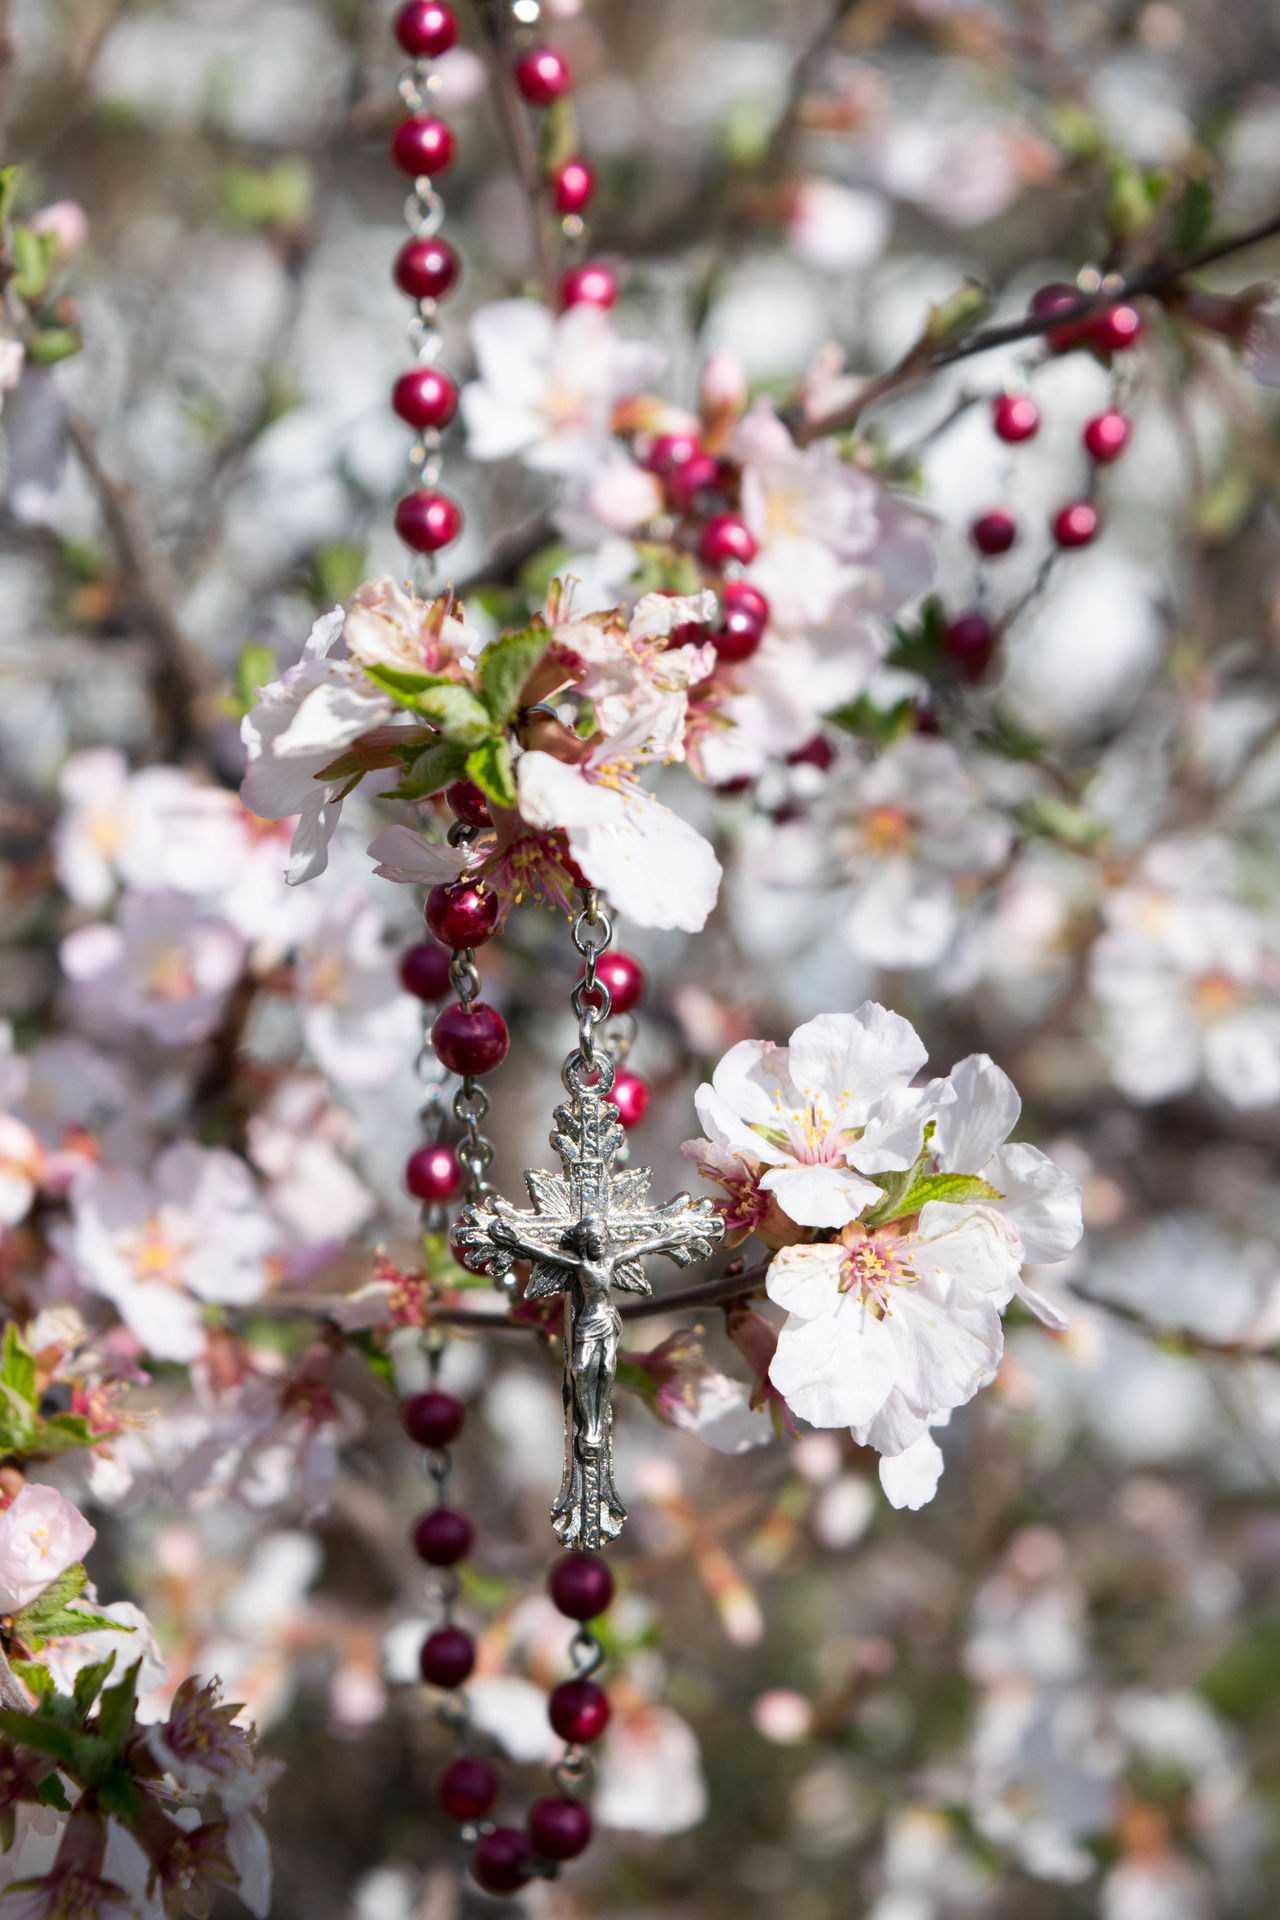 Beads Beauty In Nature Blossom Branch Close-up Day Easter Faith Flower Flower Head Fragility Freshness Good Friday Growth Hanging Jesus Christ Nature No People Outdoors Red Rosery Selective Focus Springtime Tree White Color